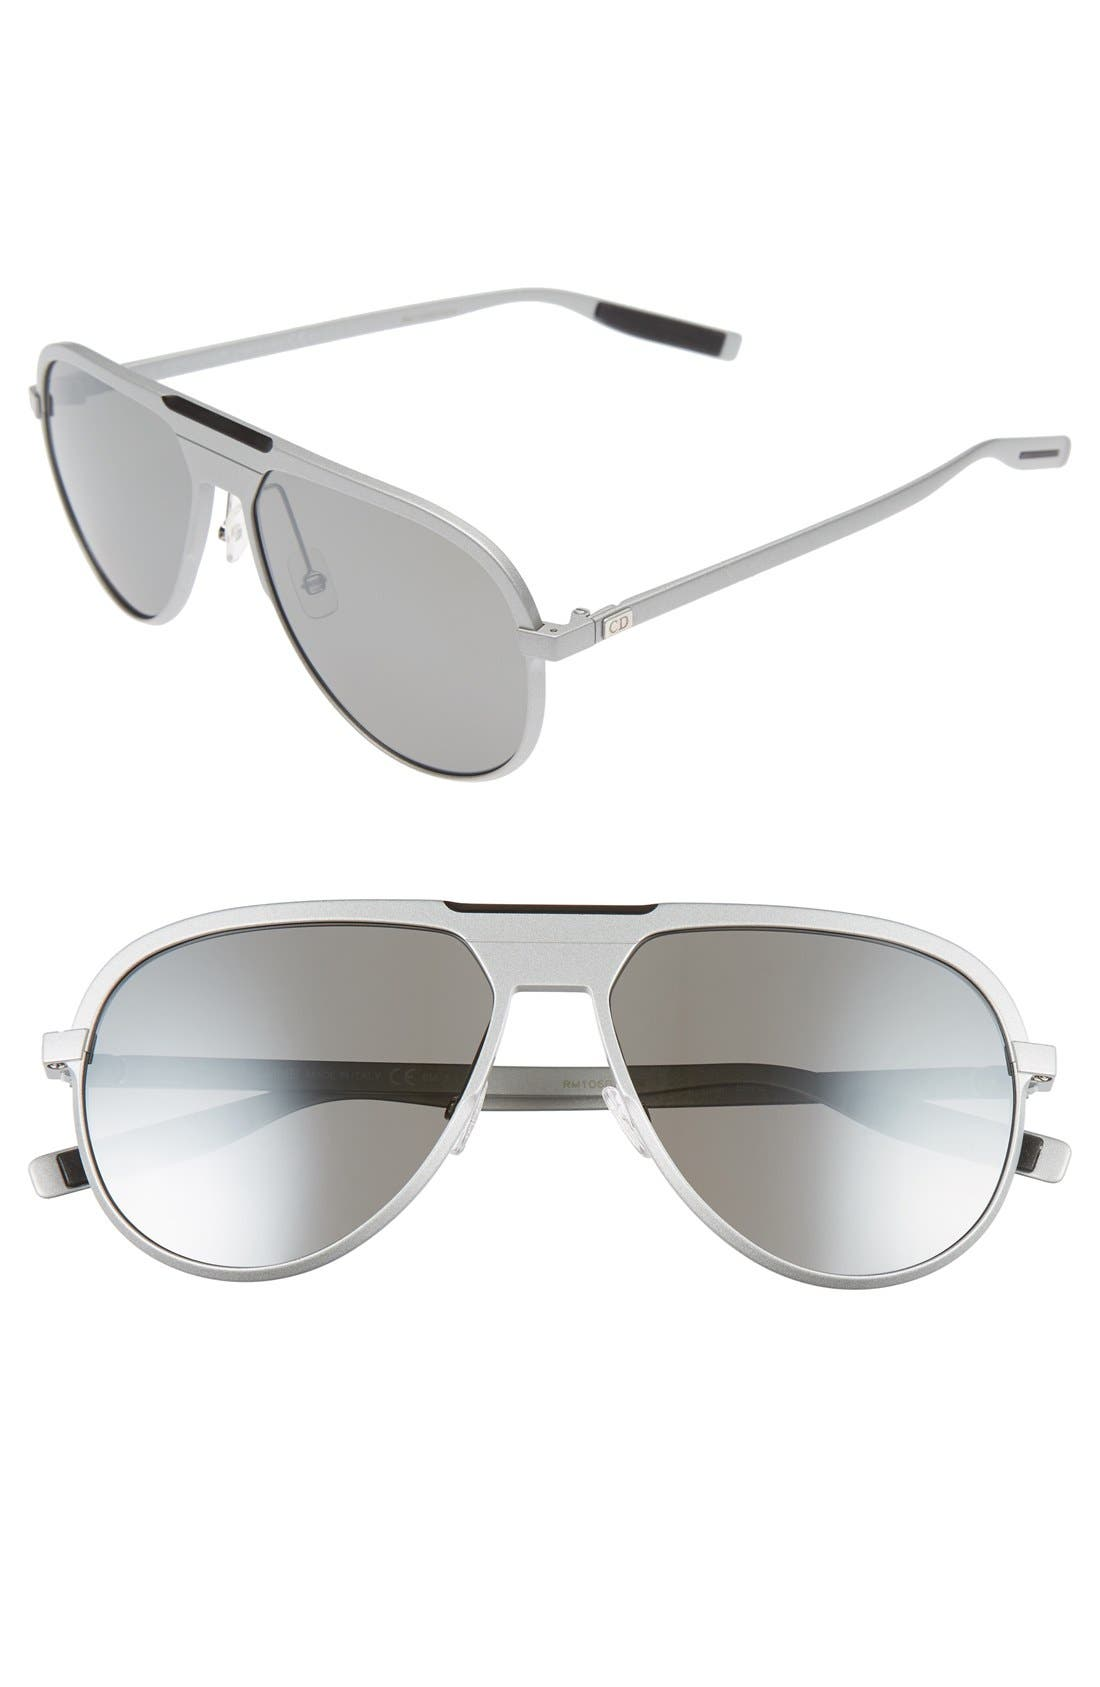 59mm Aviator Sunglasses,                         Main,                         color,